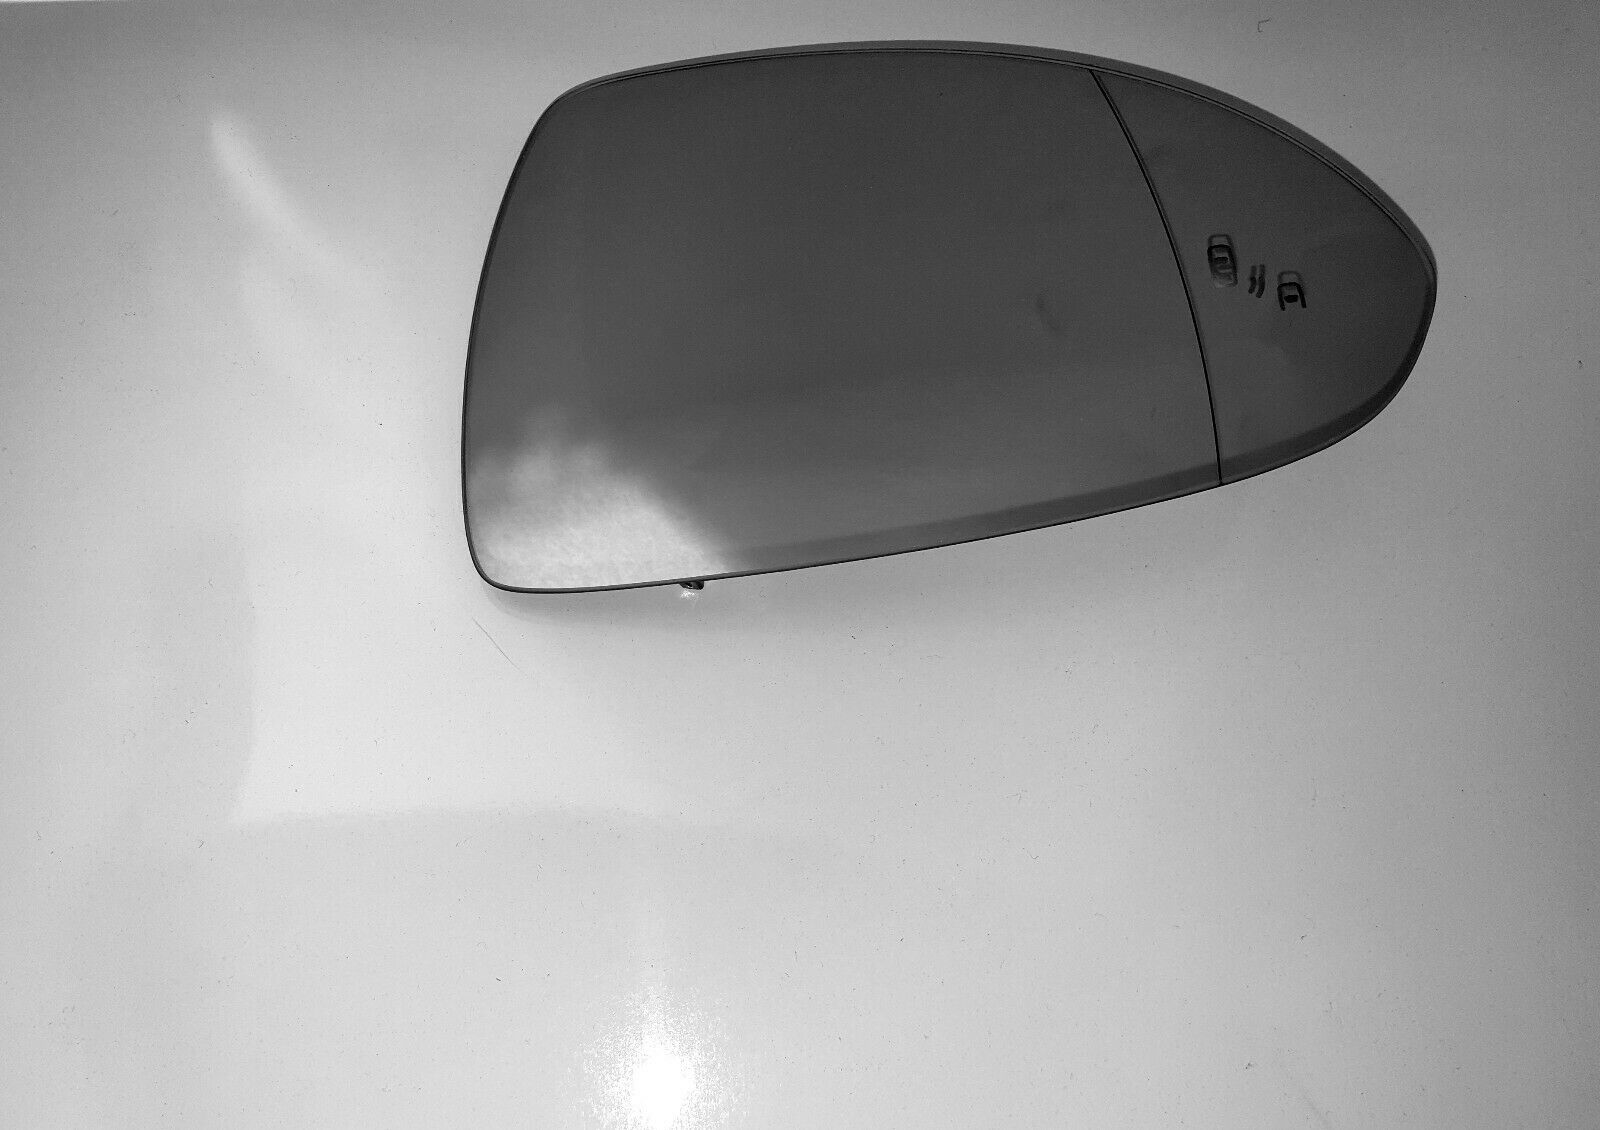 Vauxhall Corsa E Drivers Door Mirror Glass With Blind Spot Alert New OE Part 13444457*